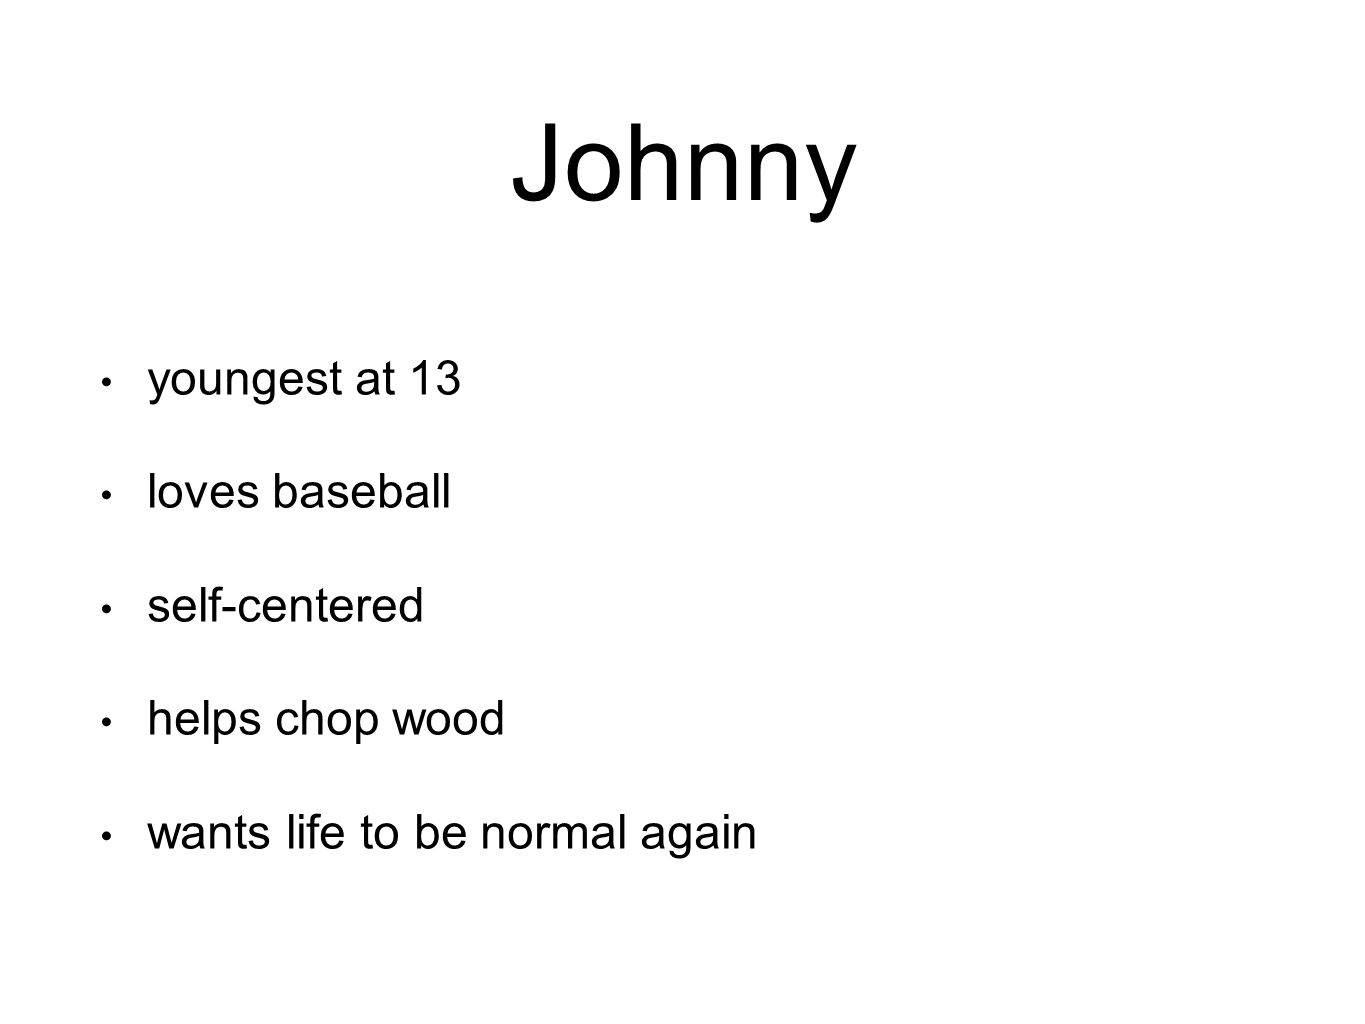 Johnny youngest at 13 loves baseball self-centered helps chop wood wants life to be normal again